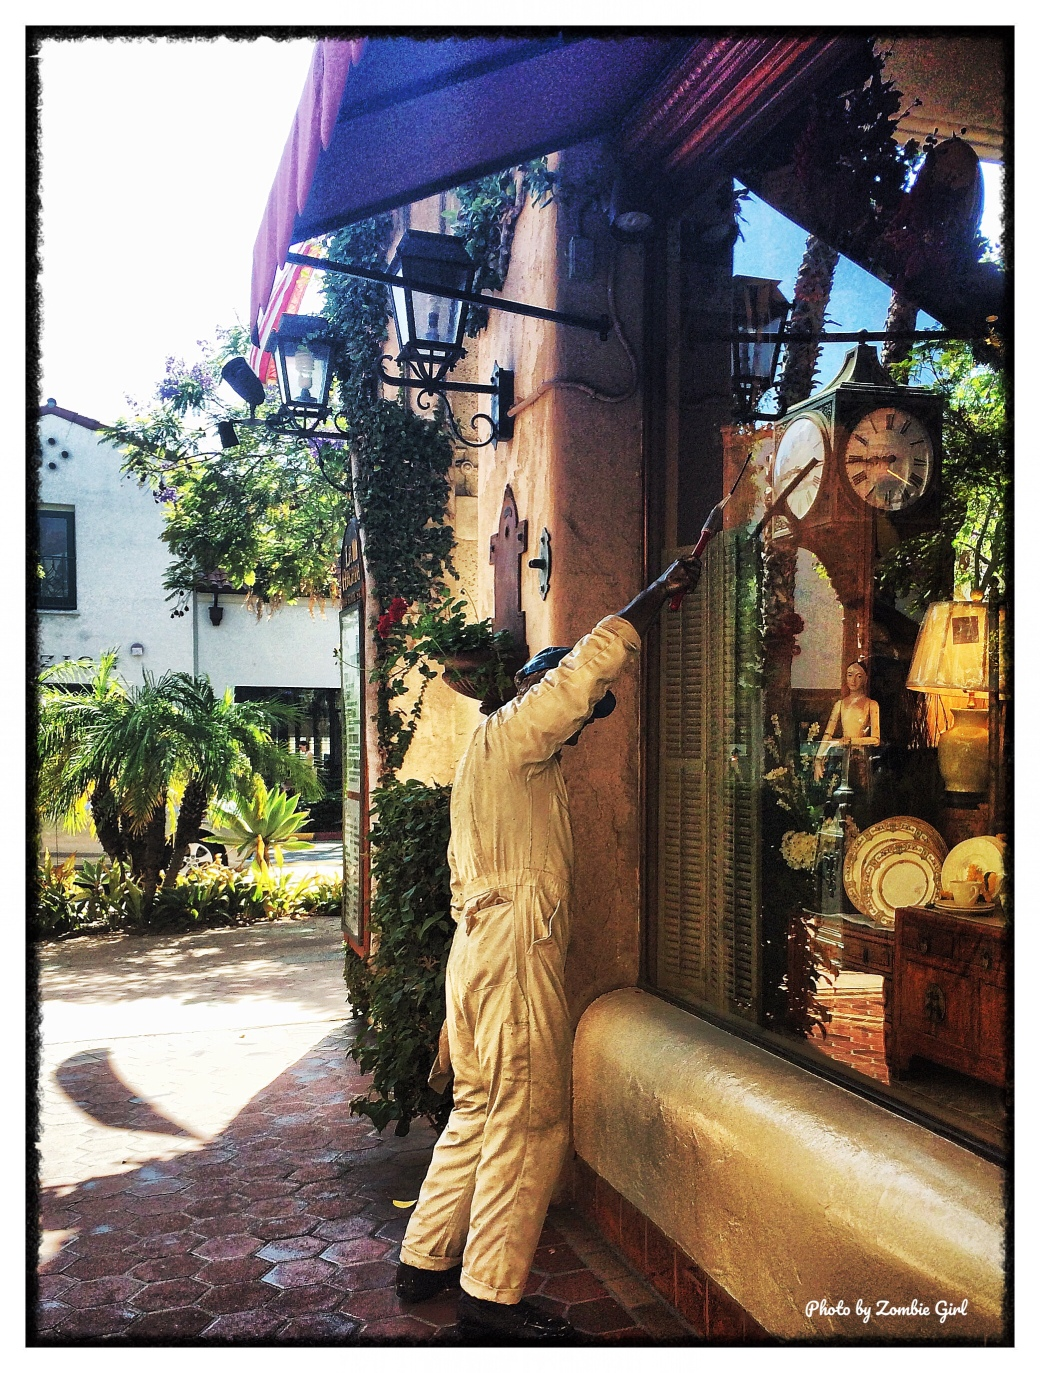 These realistic statues were everywhere and really added to the artsy vibe of Santa Barbara